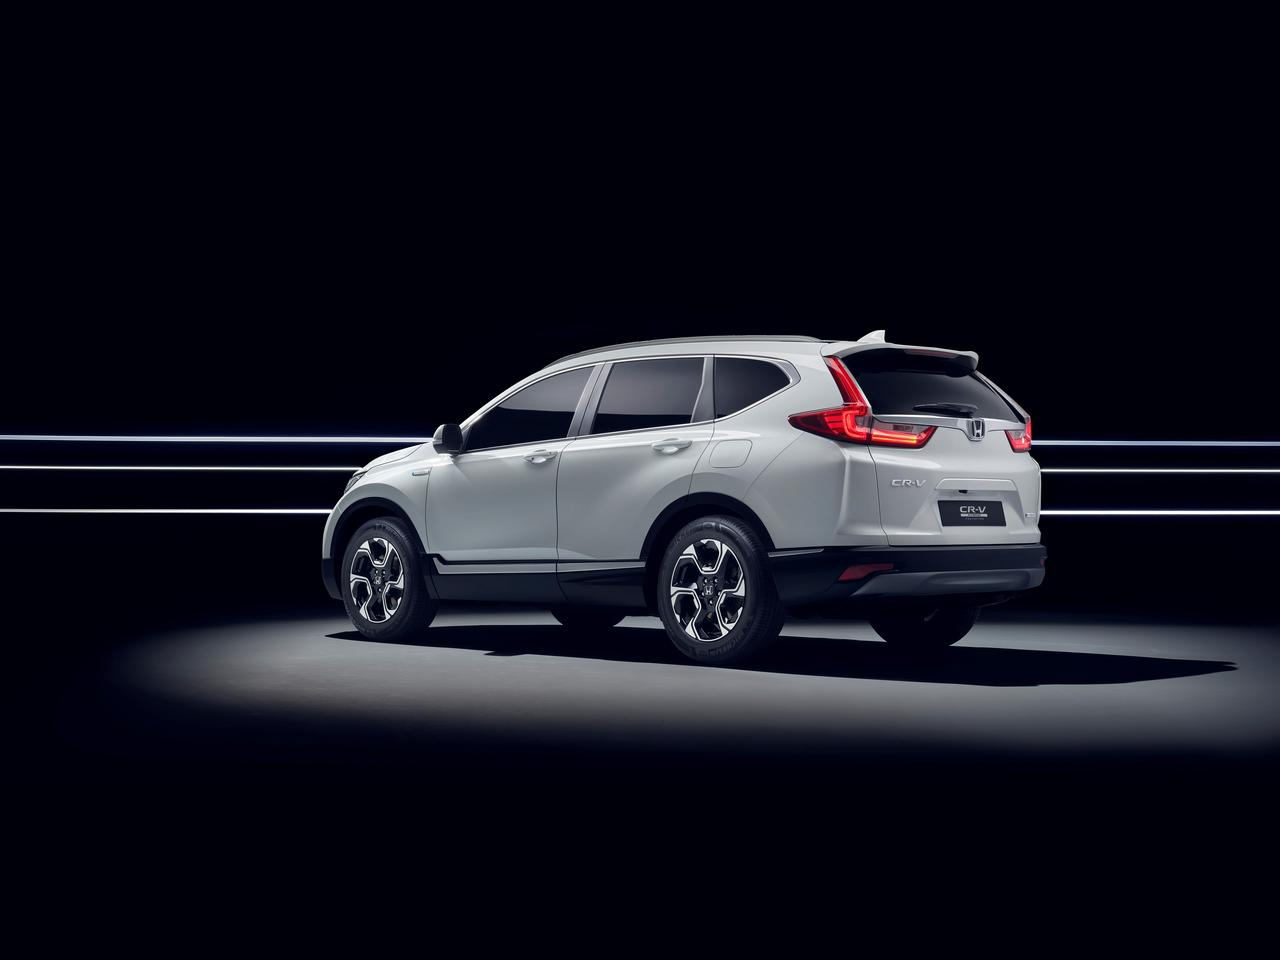 Honda CR-V 2017 front rear quarter view